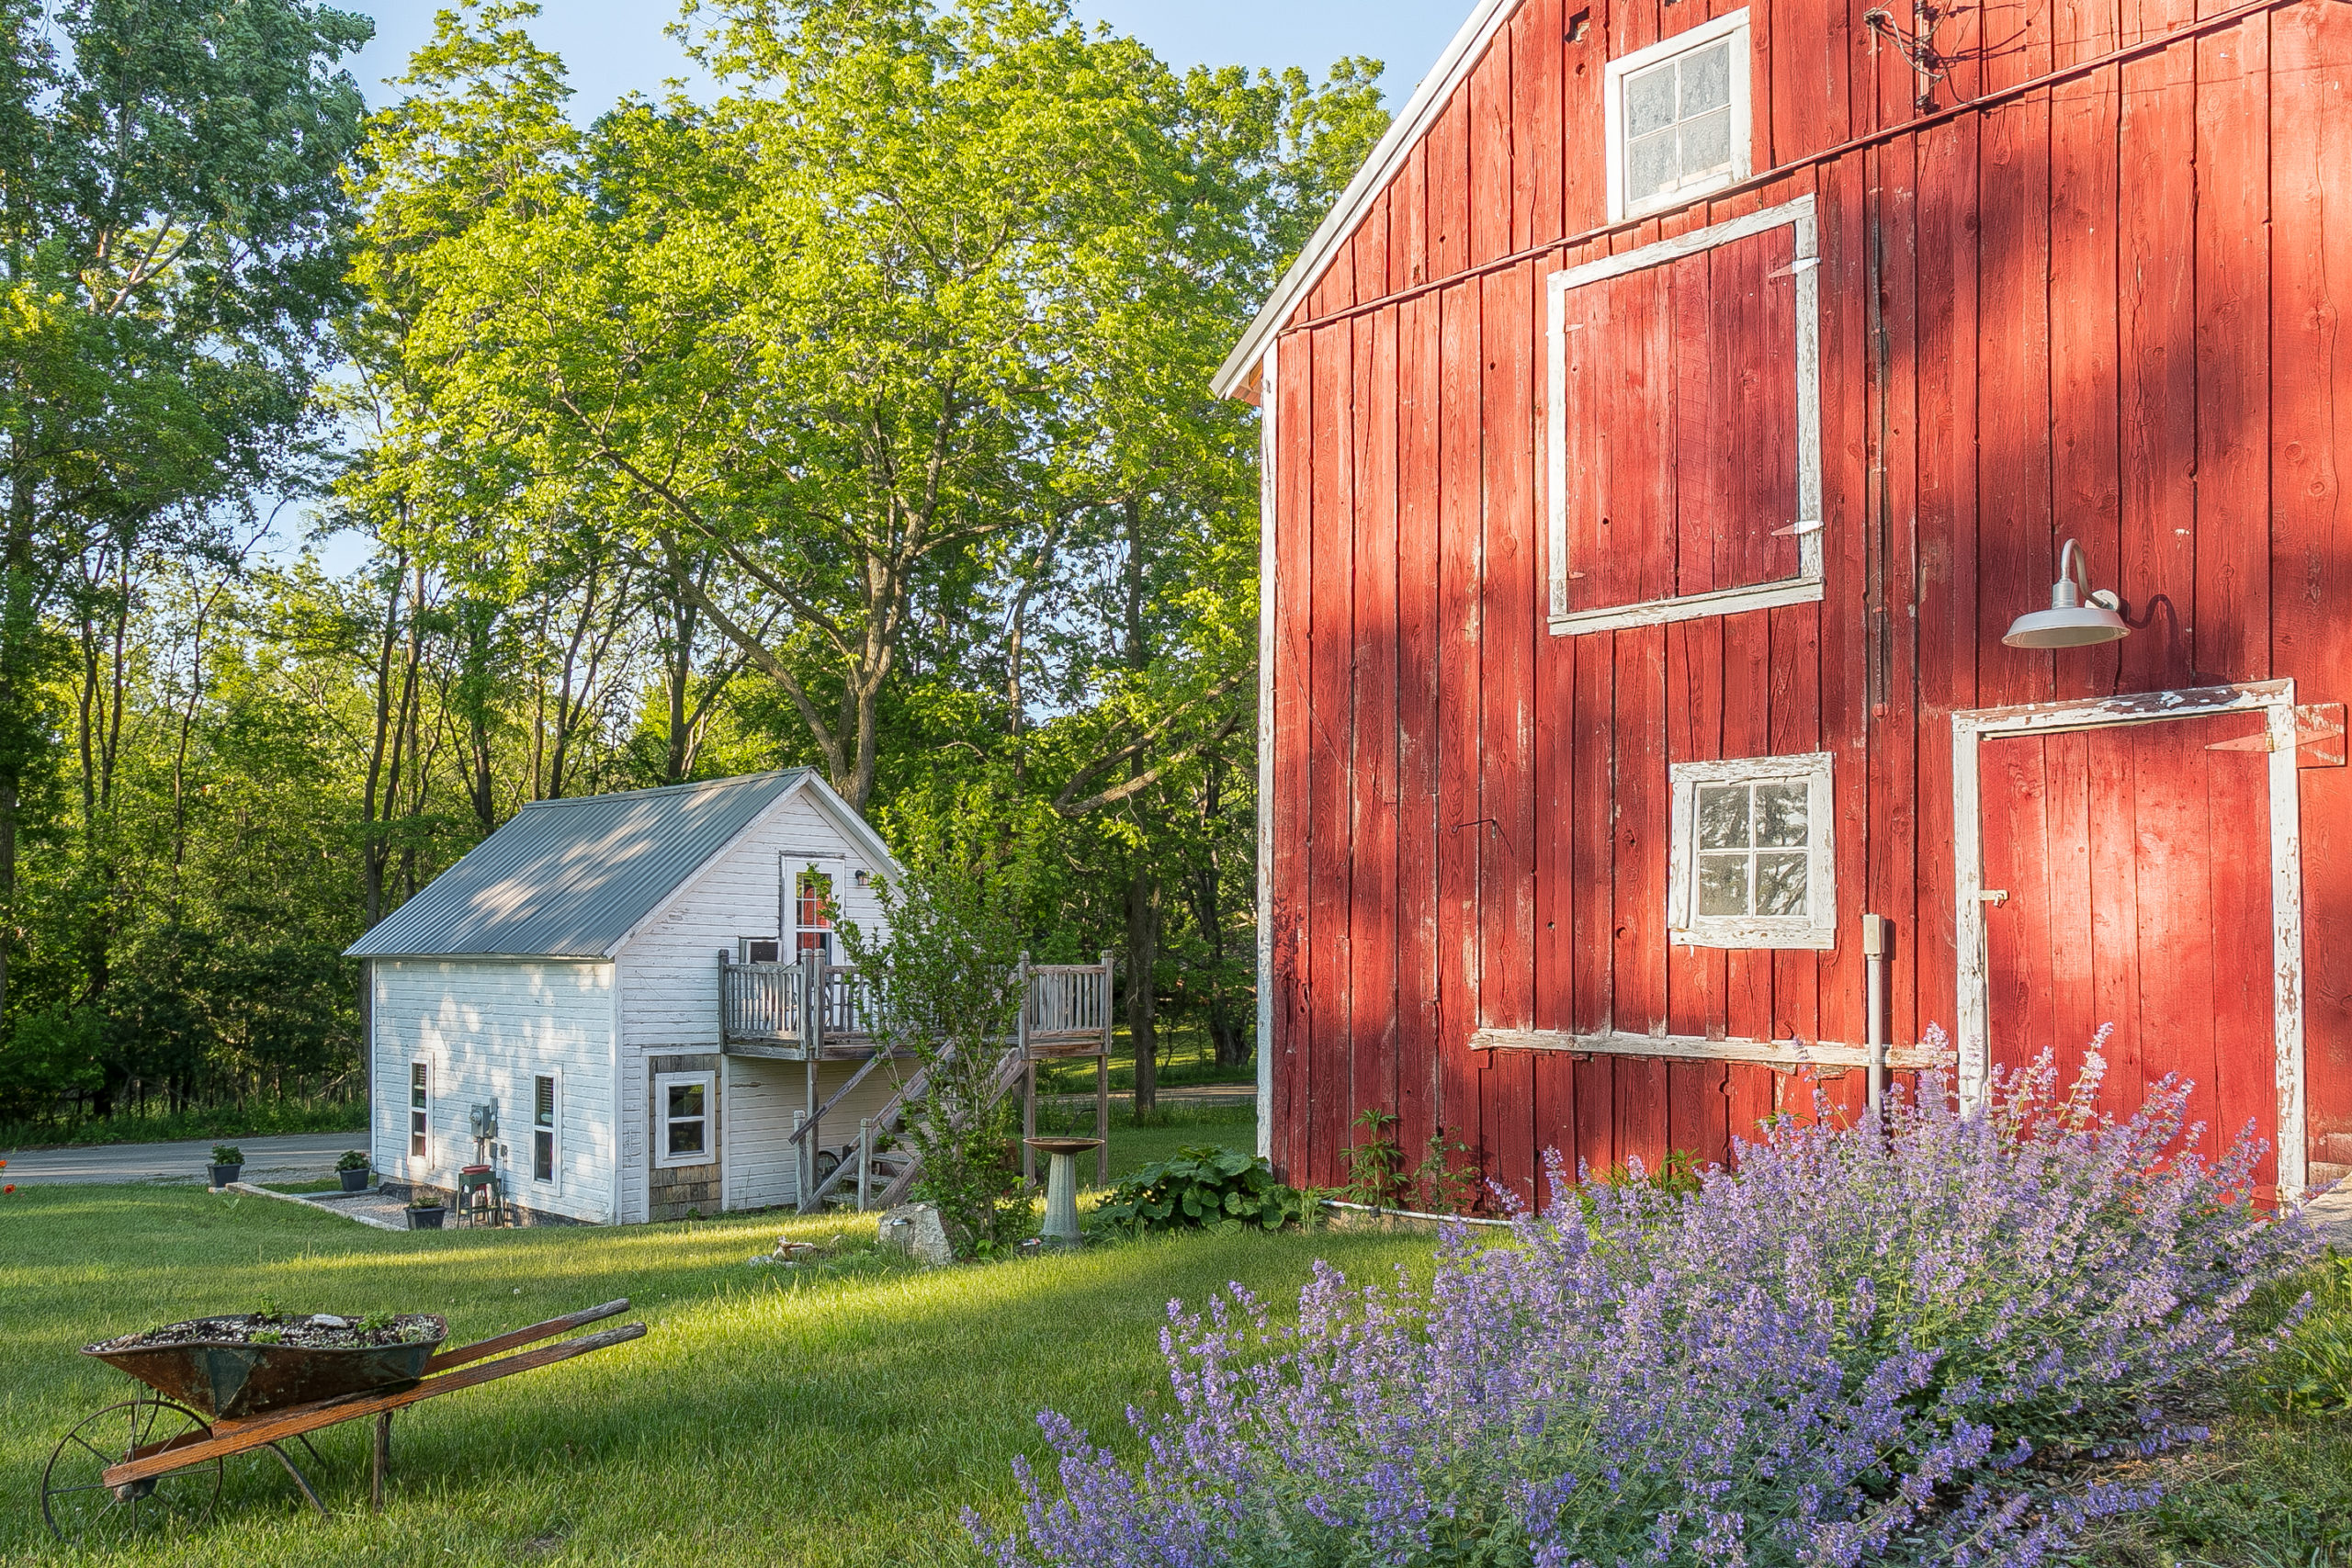 red barn and cabin at Cottonwood Inn